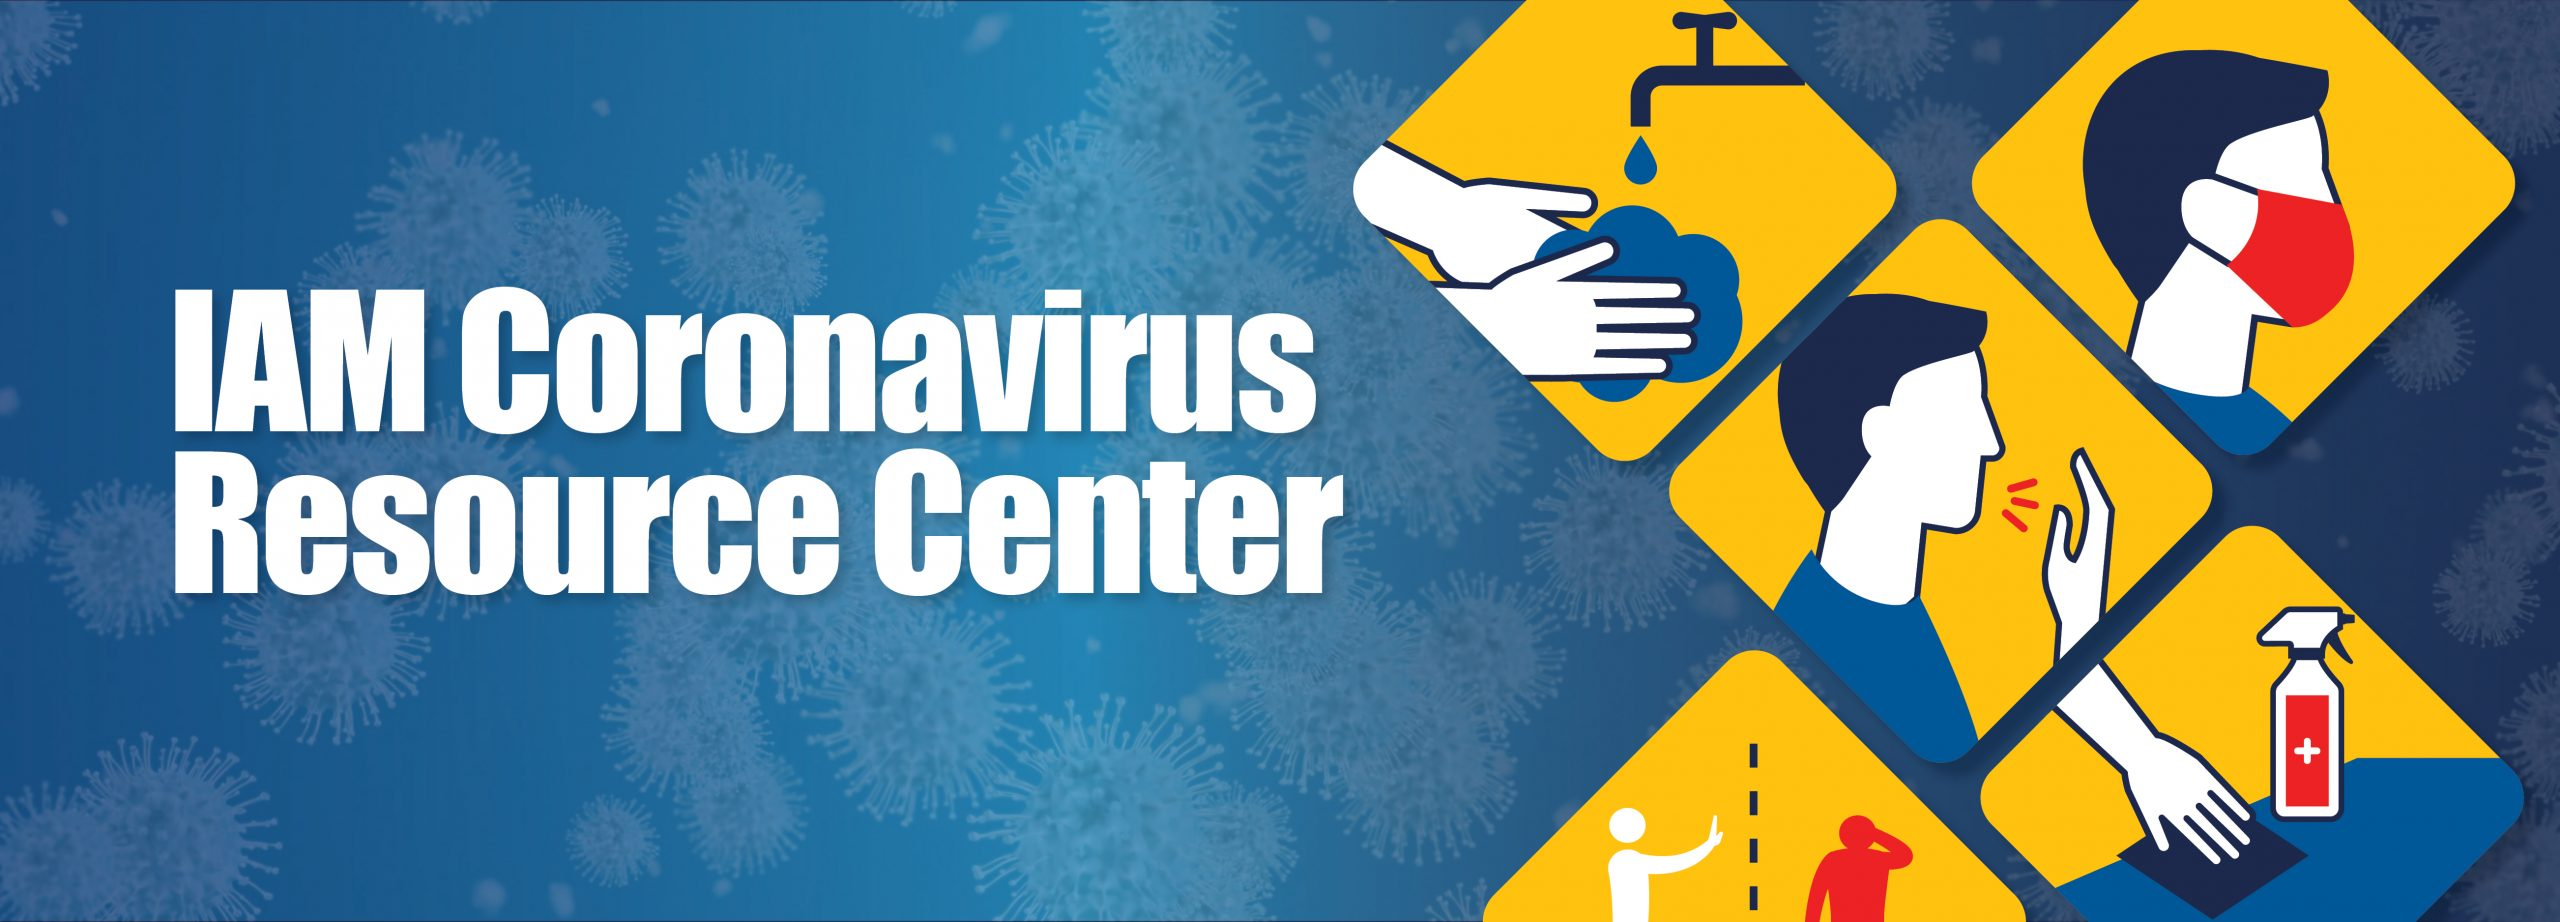 IAM Coronovirus Resource Center